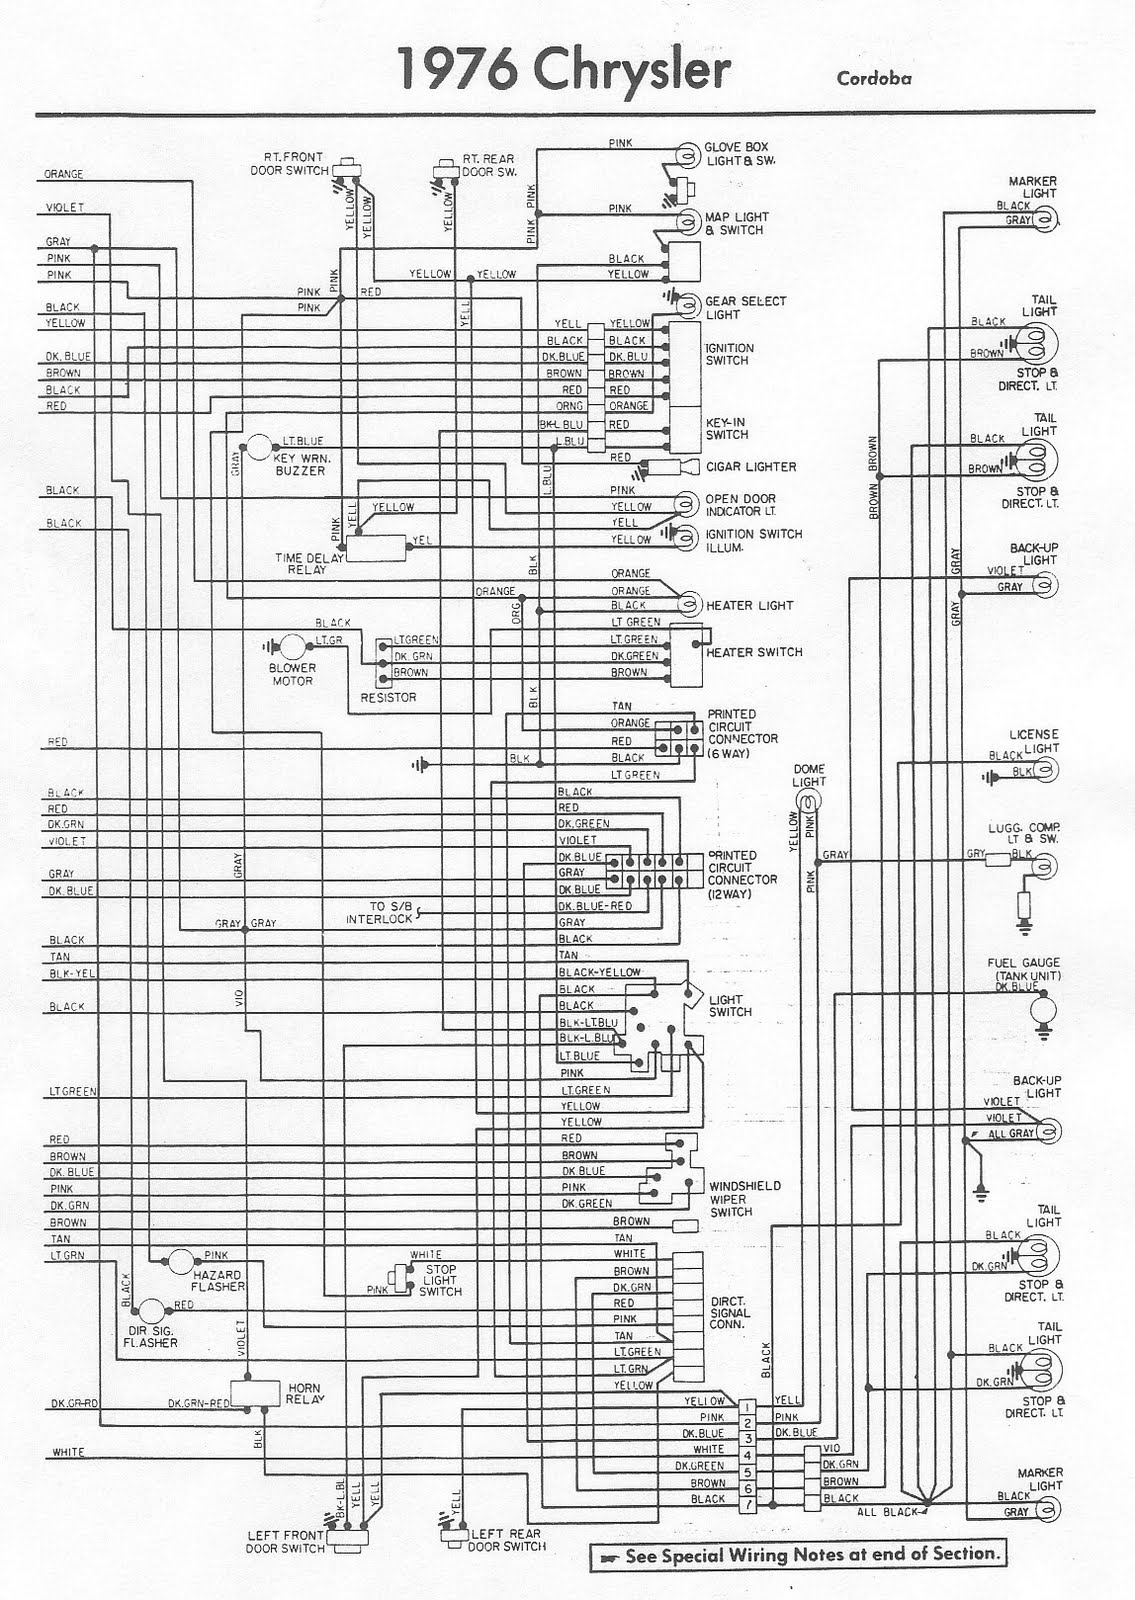 Free Auto Wiring Diagram 1970 Plymouth Belvedere Runner Satellite Electrical Diagrams 1976 Chrysler Cordoba Rear Side